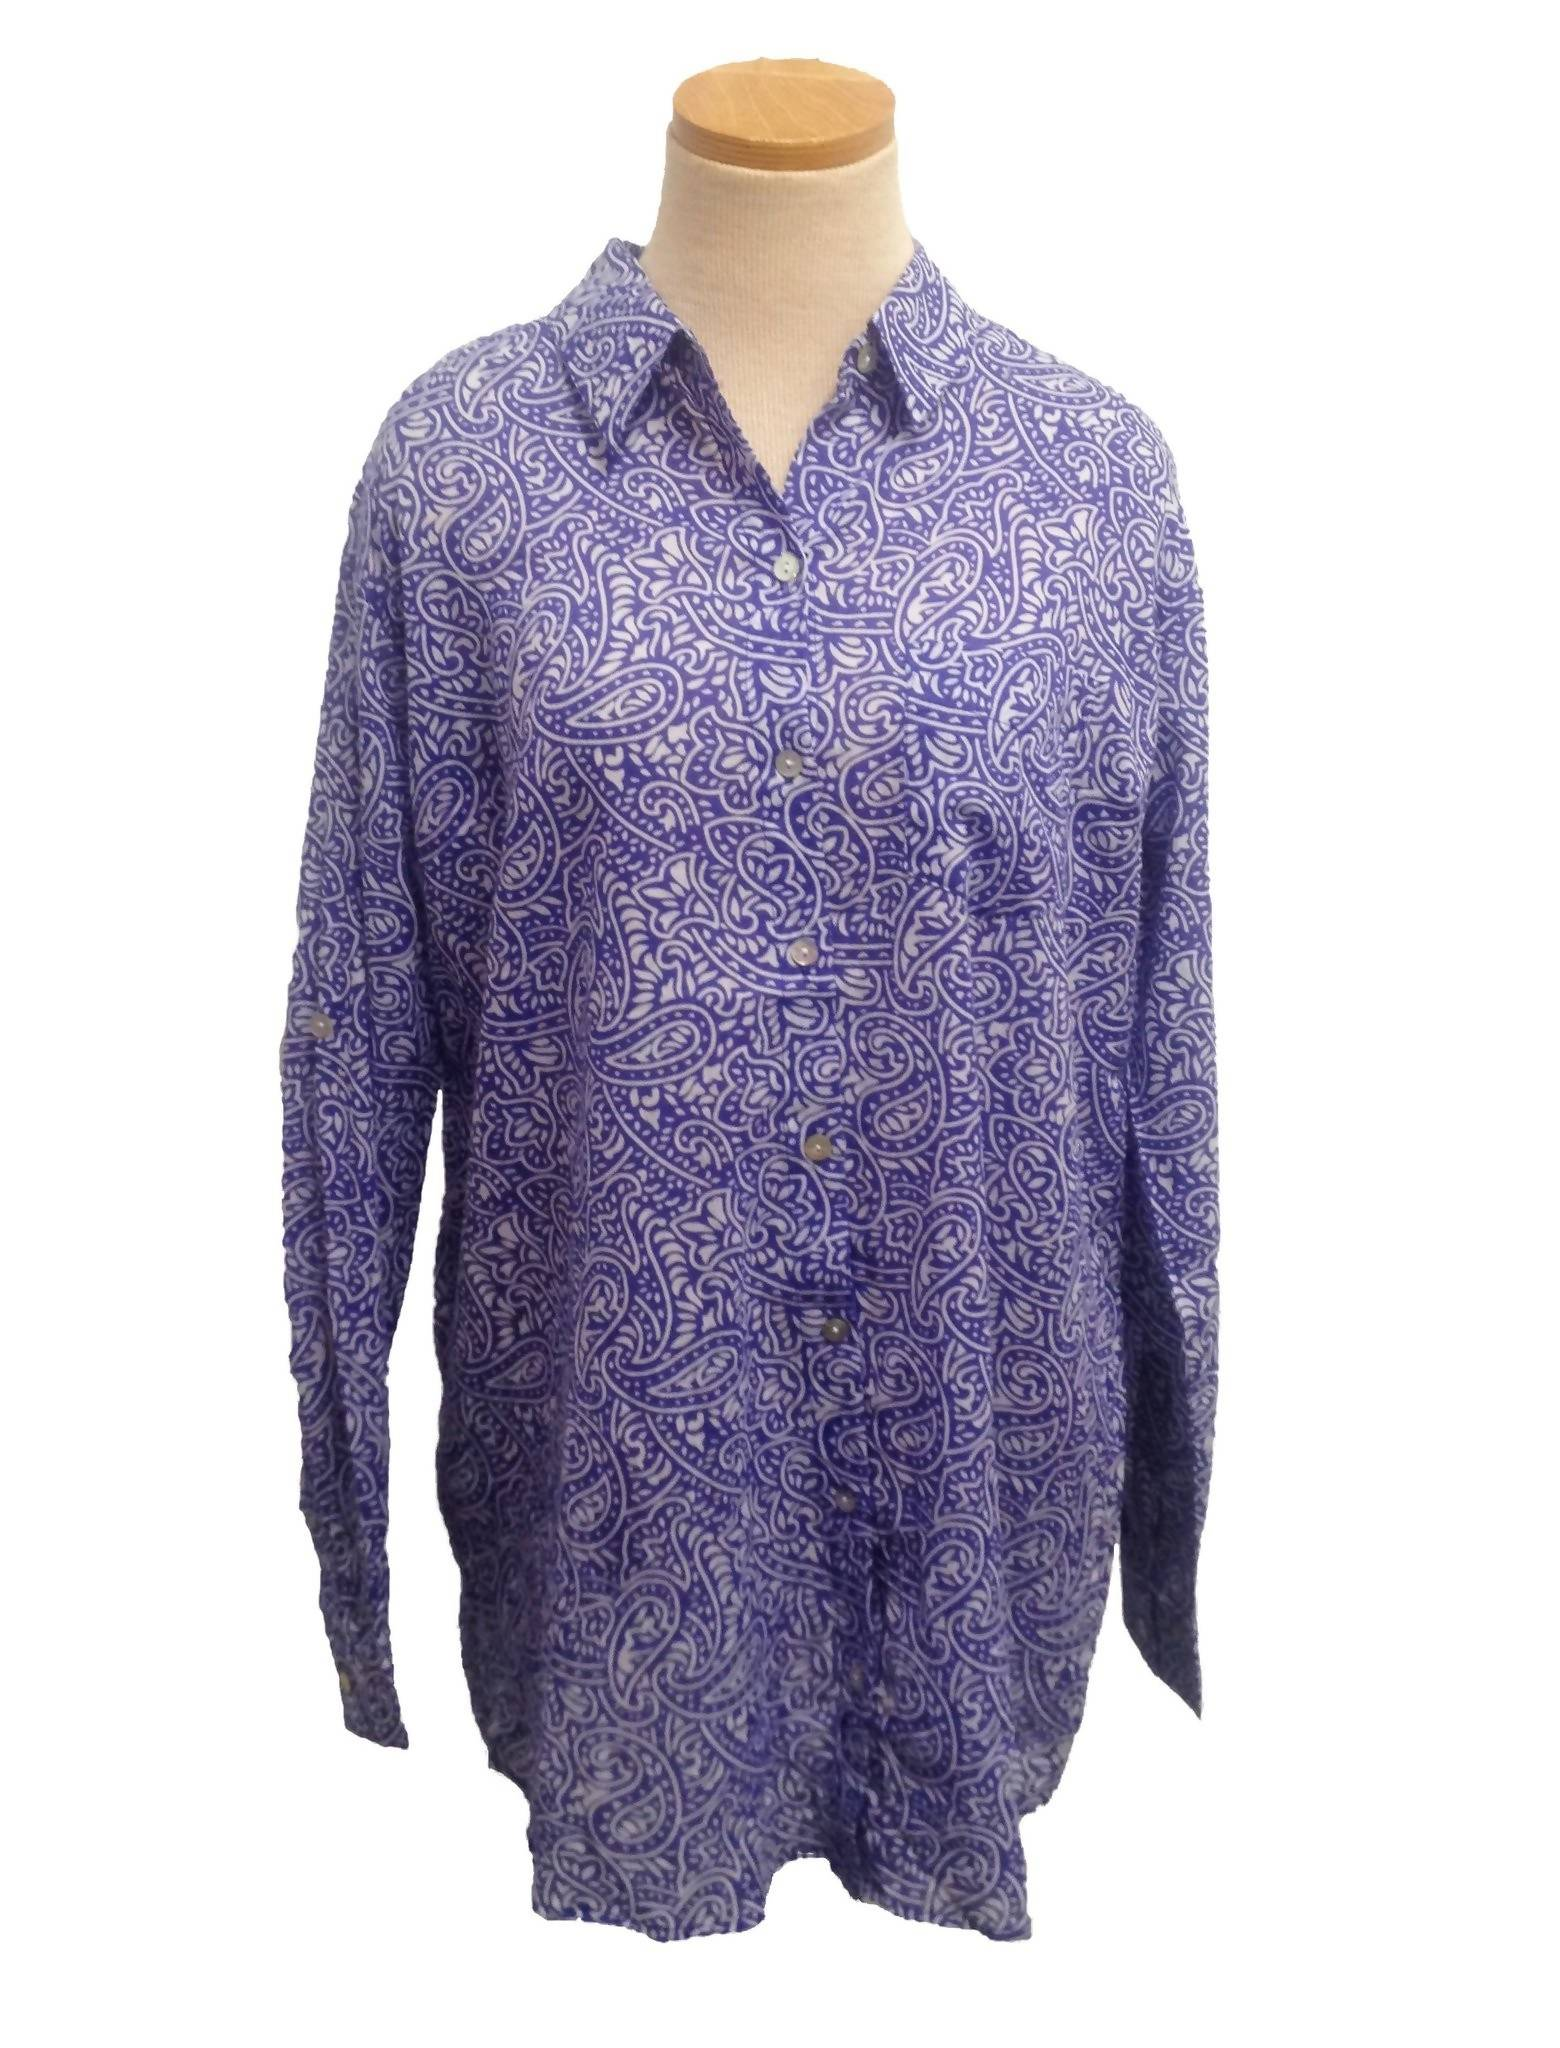 Royal Blue Paisley Over-Sized KikiSol Boyfriend Shirt